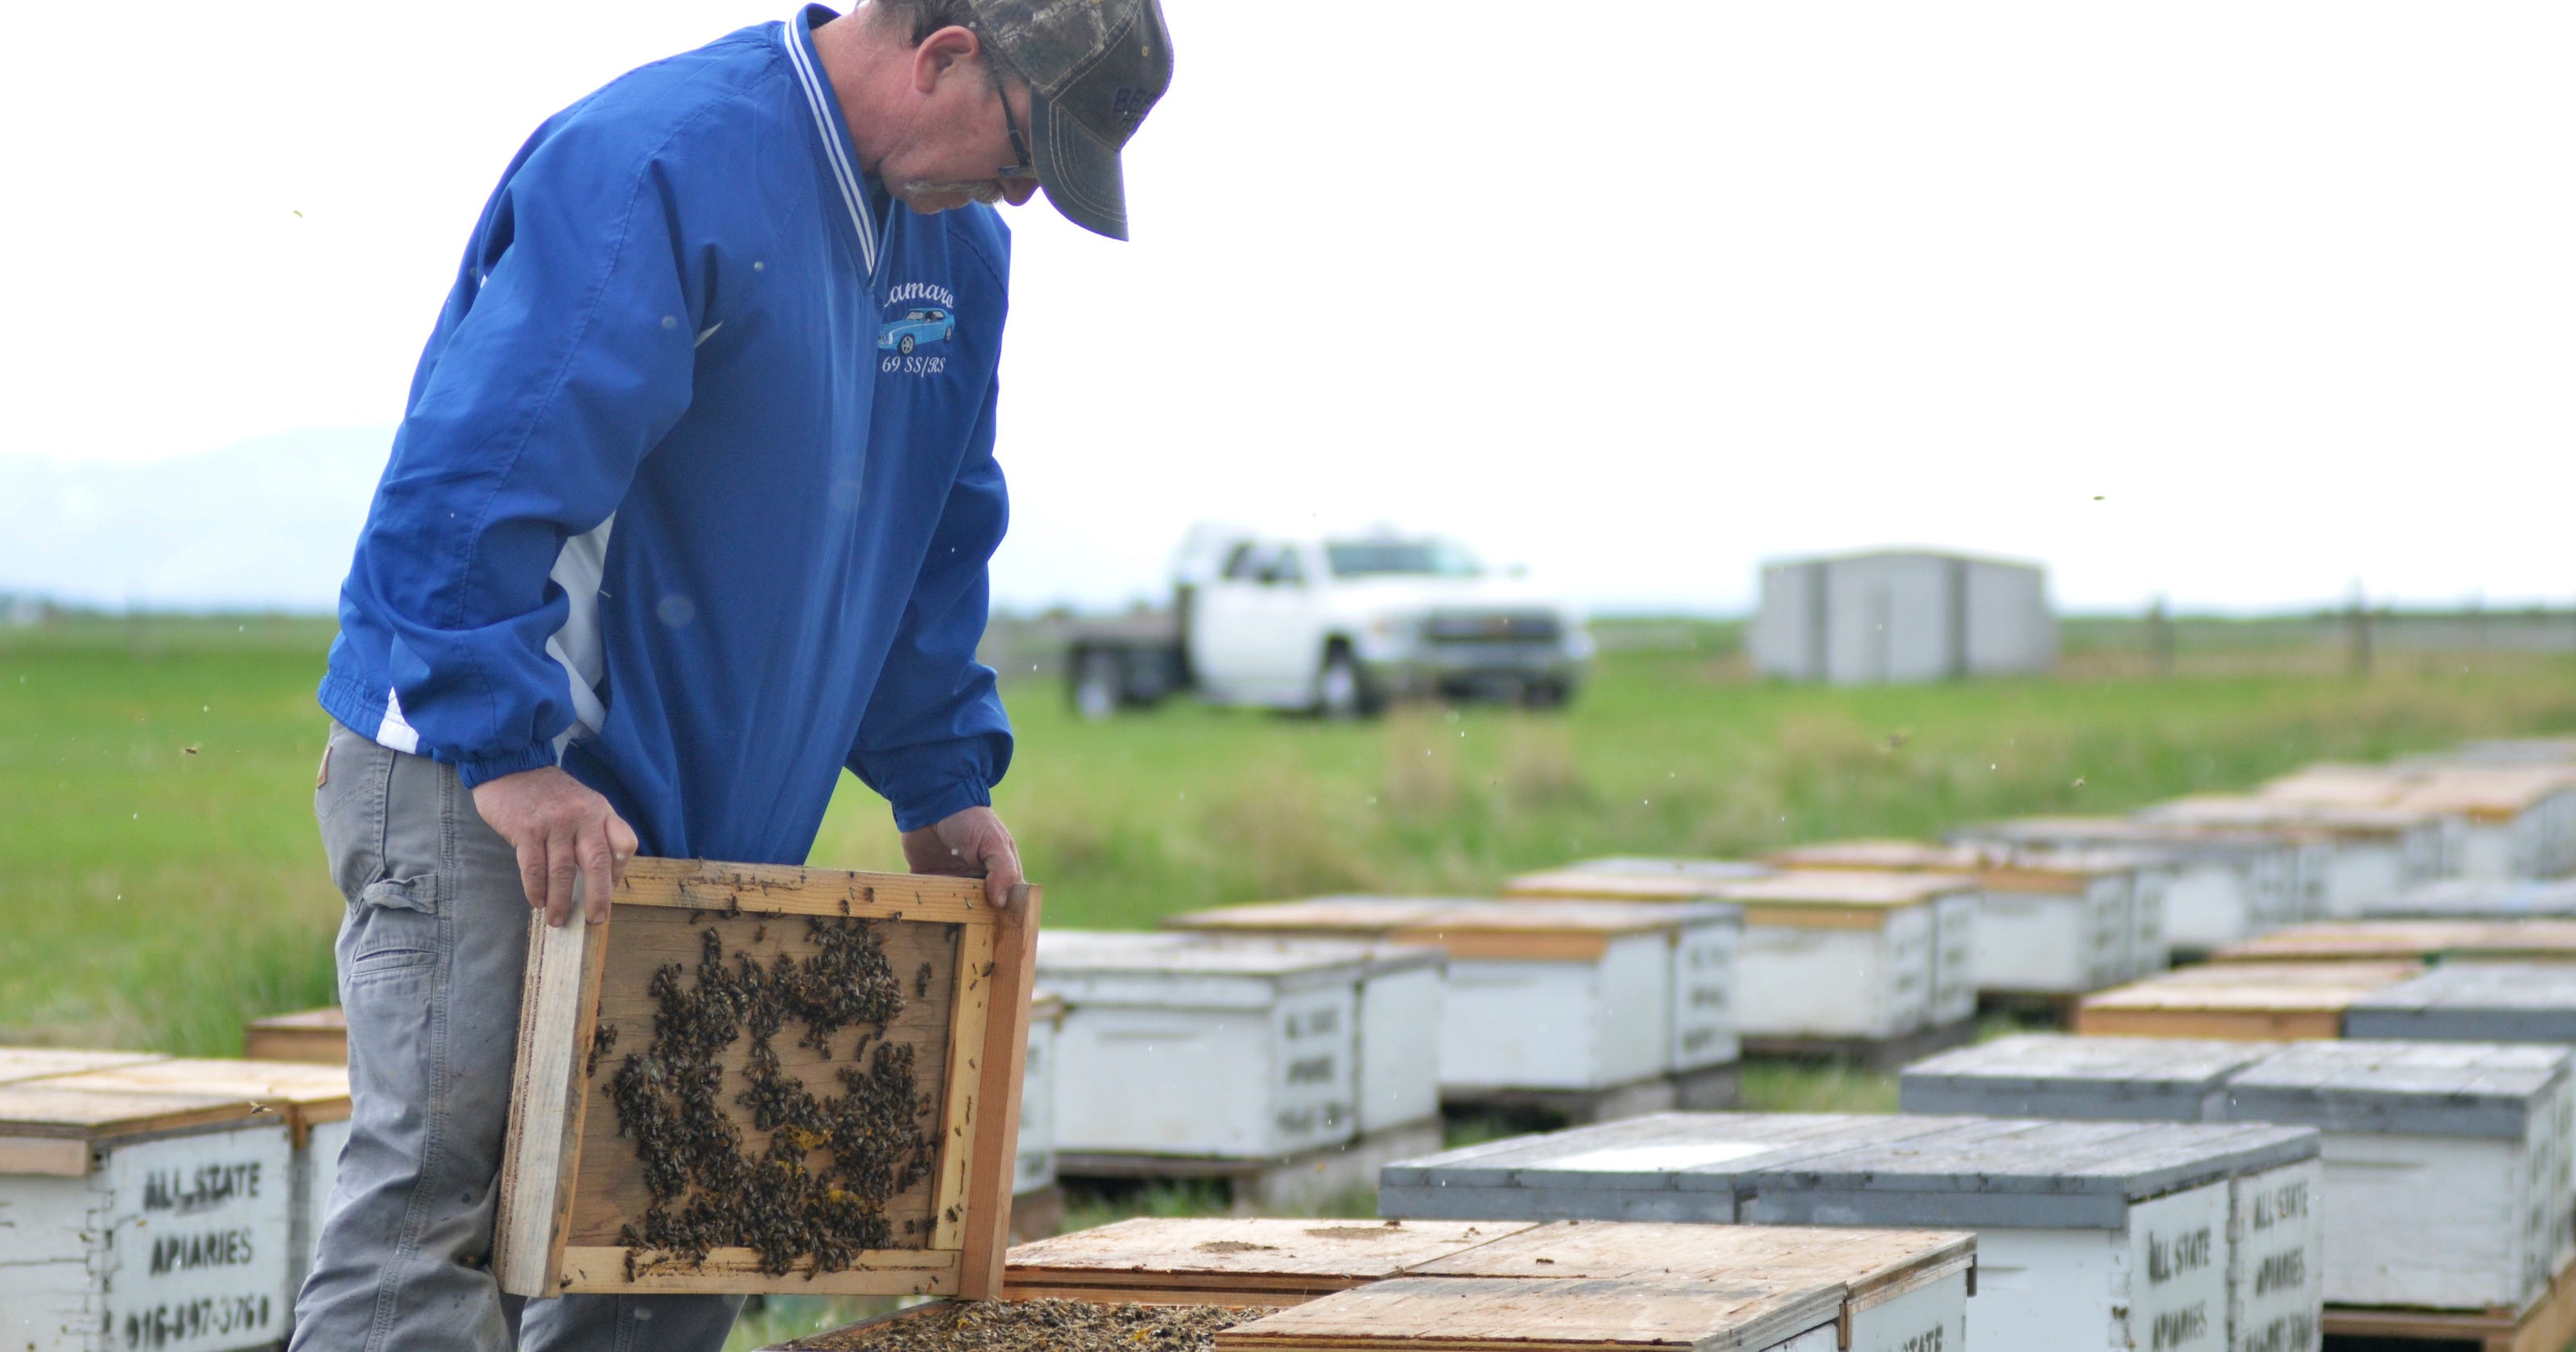 Russians reportedly stung in stolen bee case, Choteau